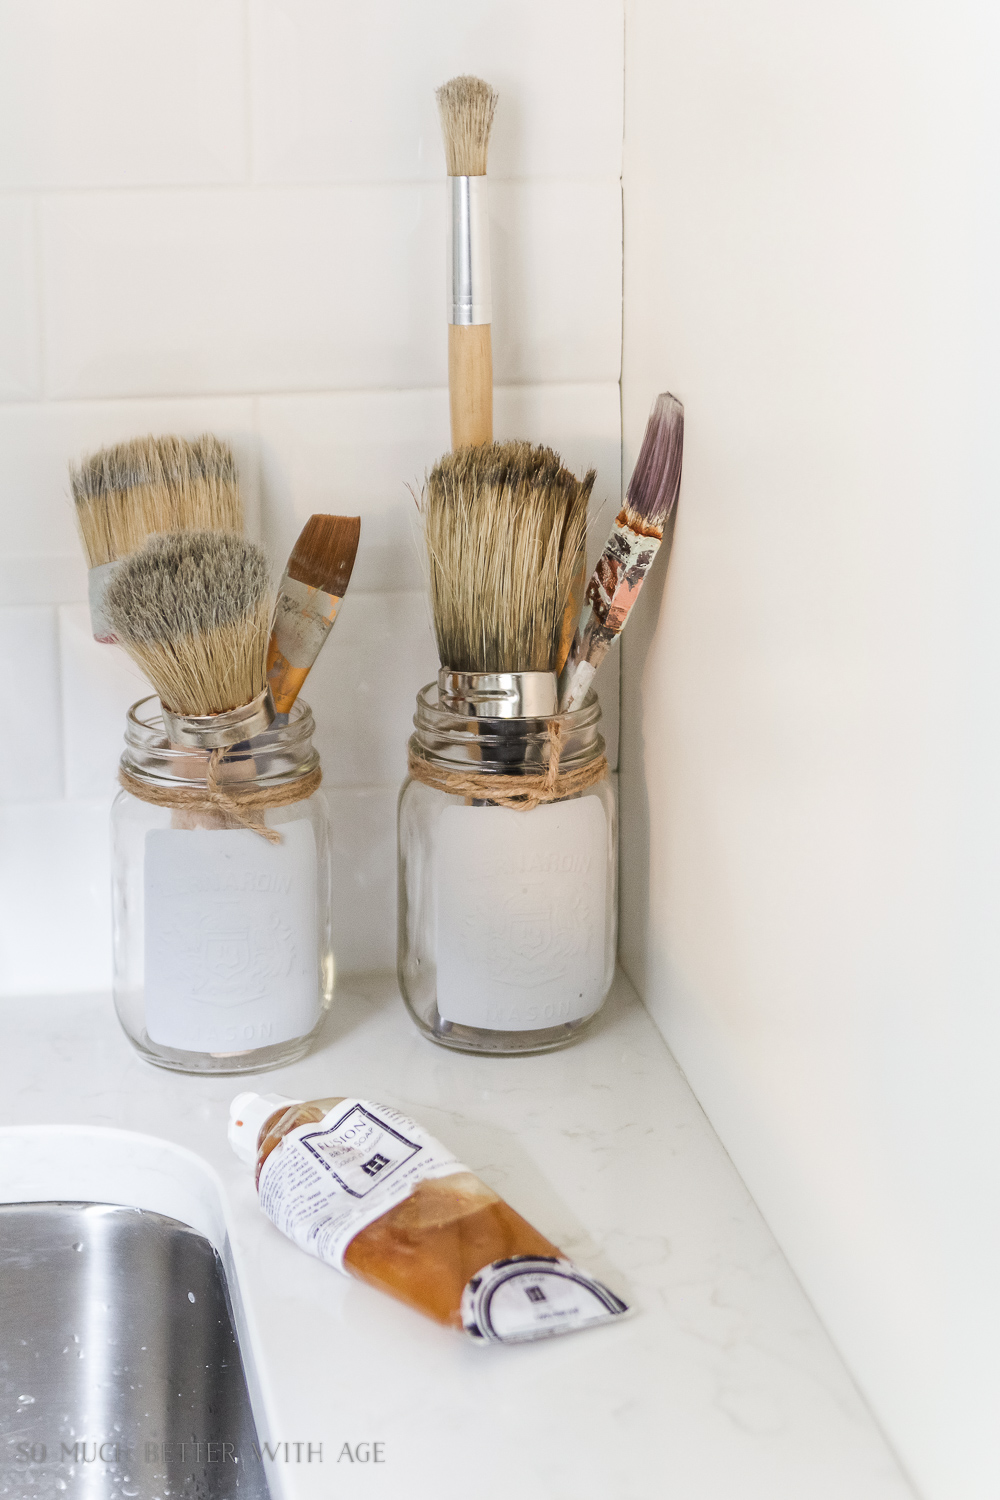 Tiny Vintage Mudroom Makeover / painted mason jars storing paint brushes - So Much Better With Age